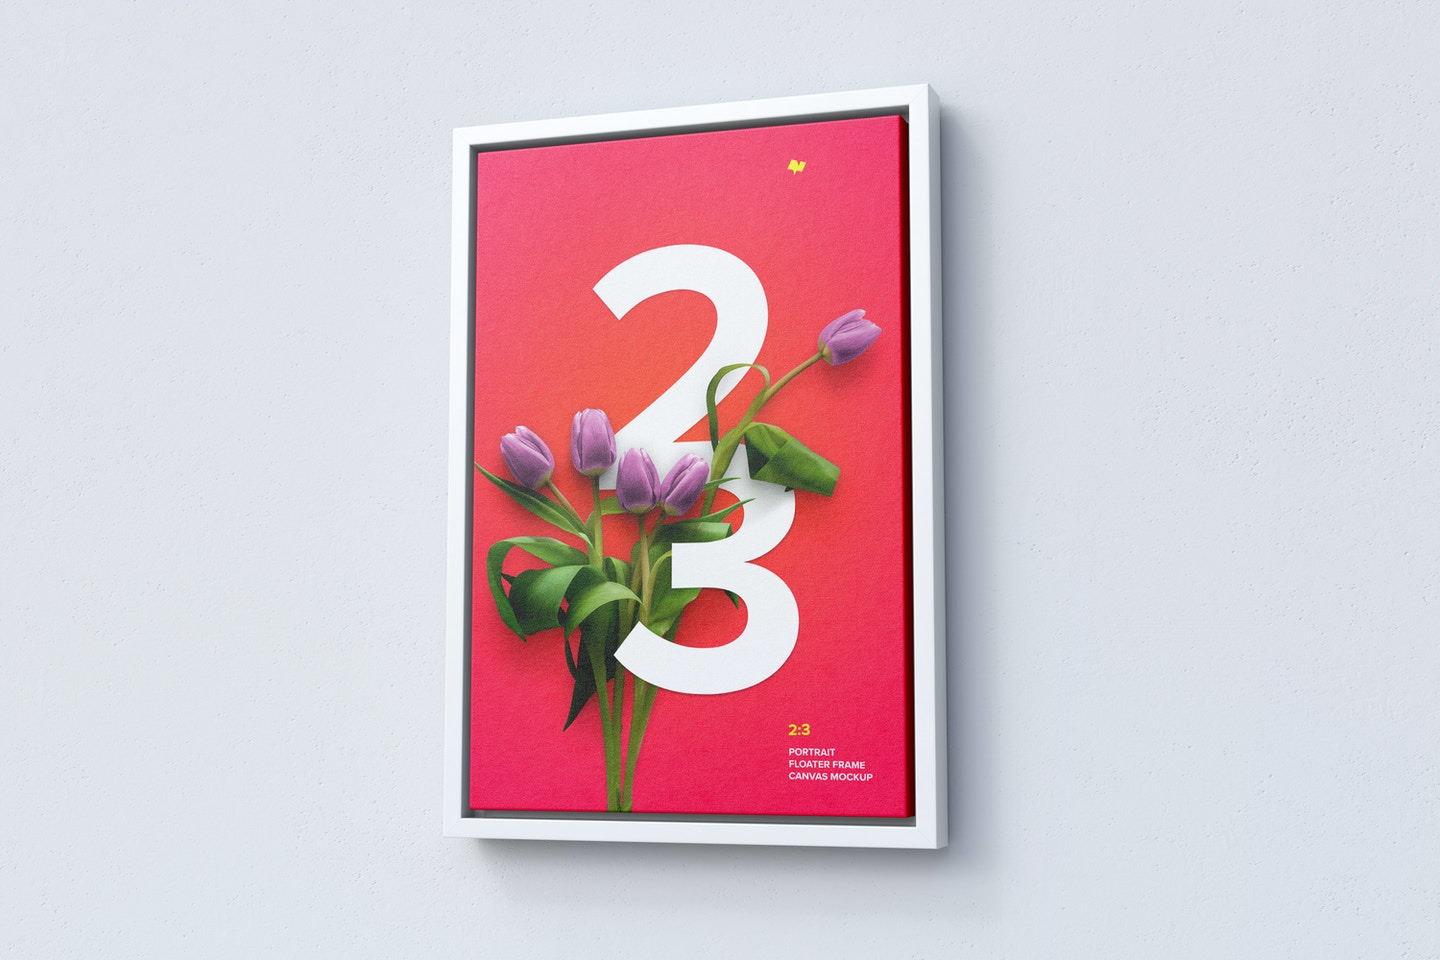 2:3 Portrait Canvas Mockup in Floater Frame, Right View